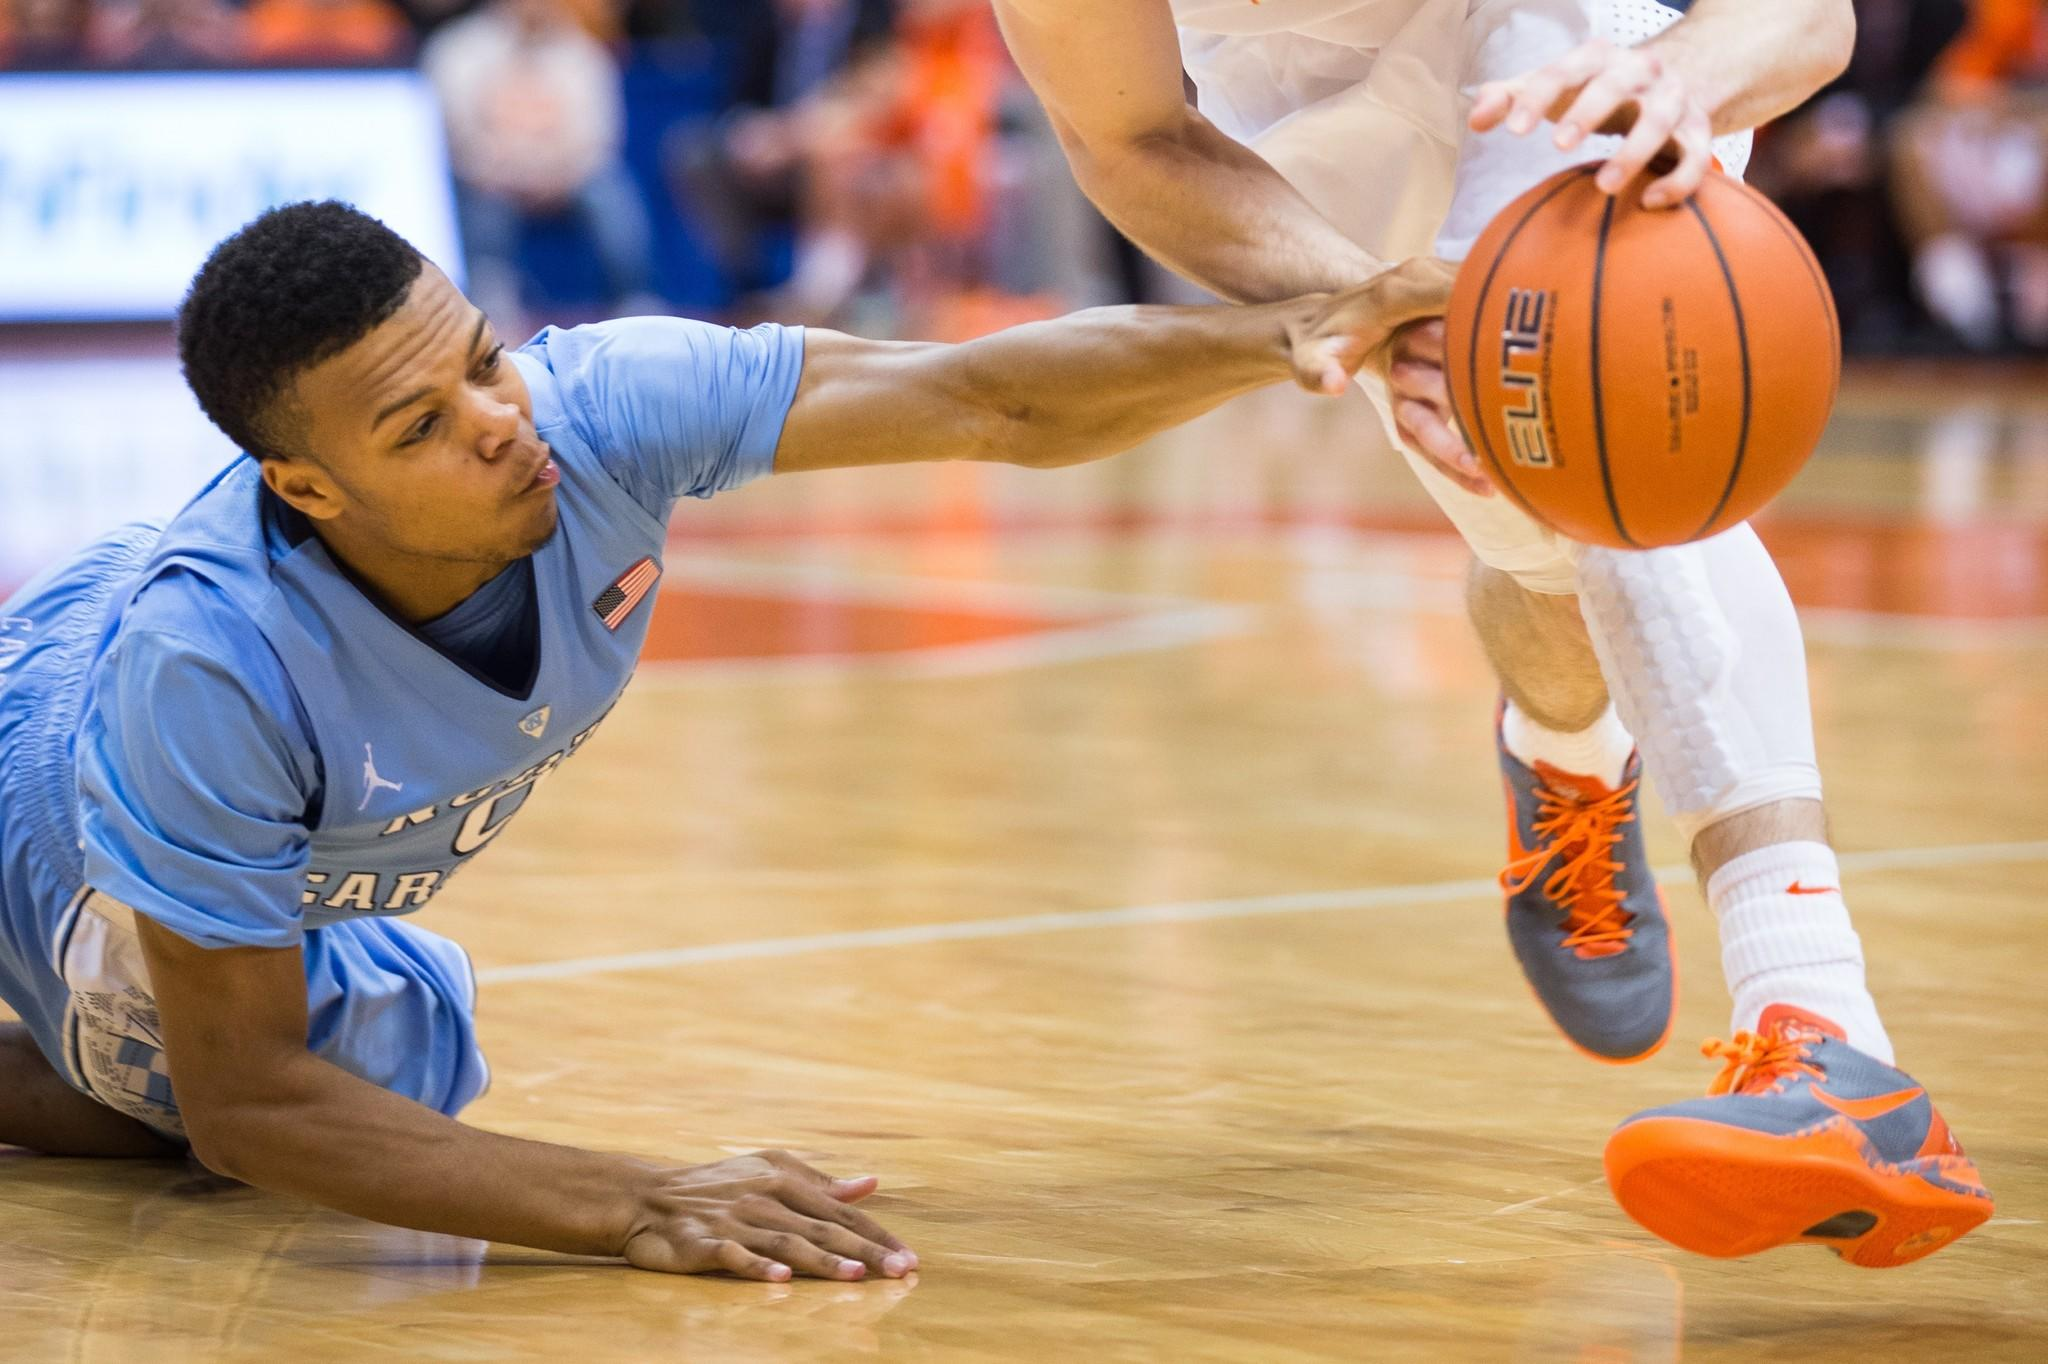 Nate Britt of the North Carolina Tar Heels reaches in unsuccessfully as Trevor Cooney of the Syracuse Orange dribbles past in the second half on January 11, 2014 at The Carrier Dome in Syracuse, New York. Syracuse defeats North Carolina 57-45.